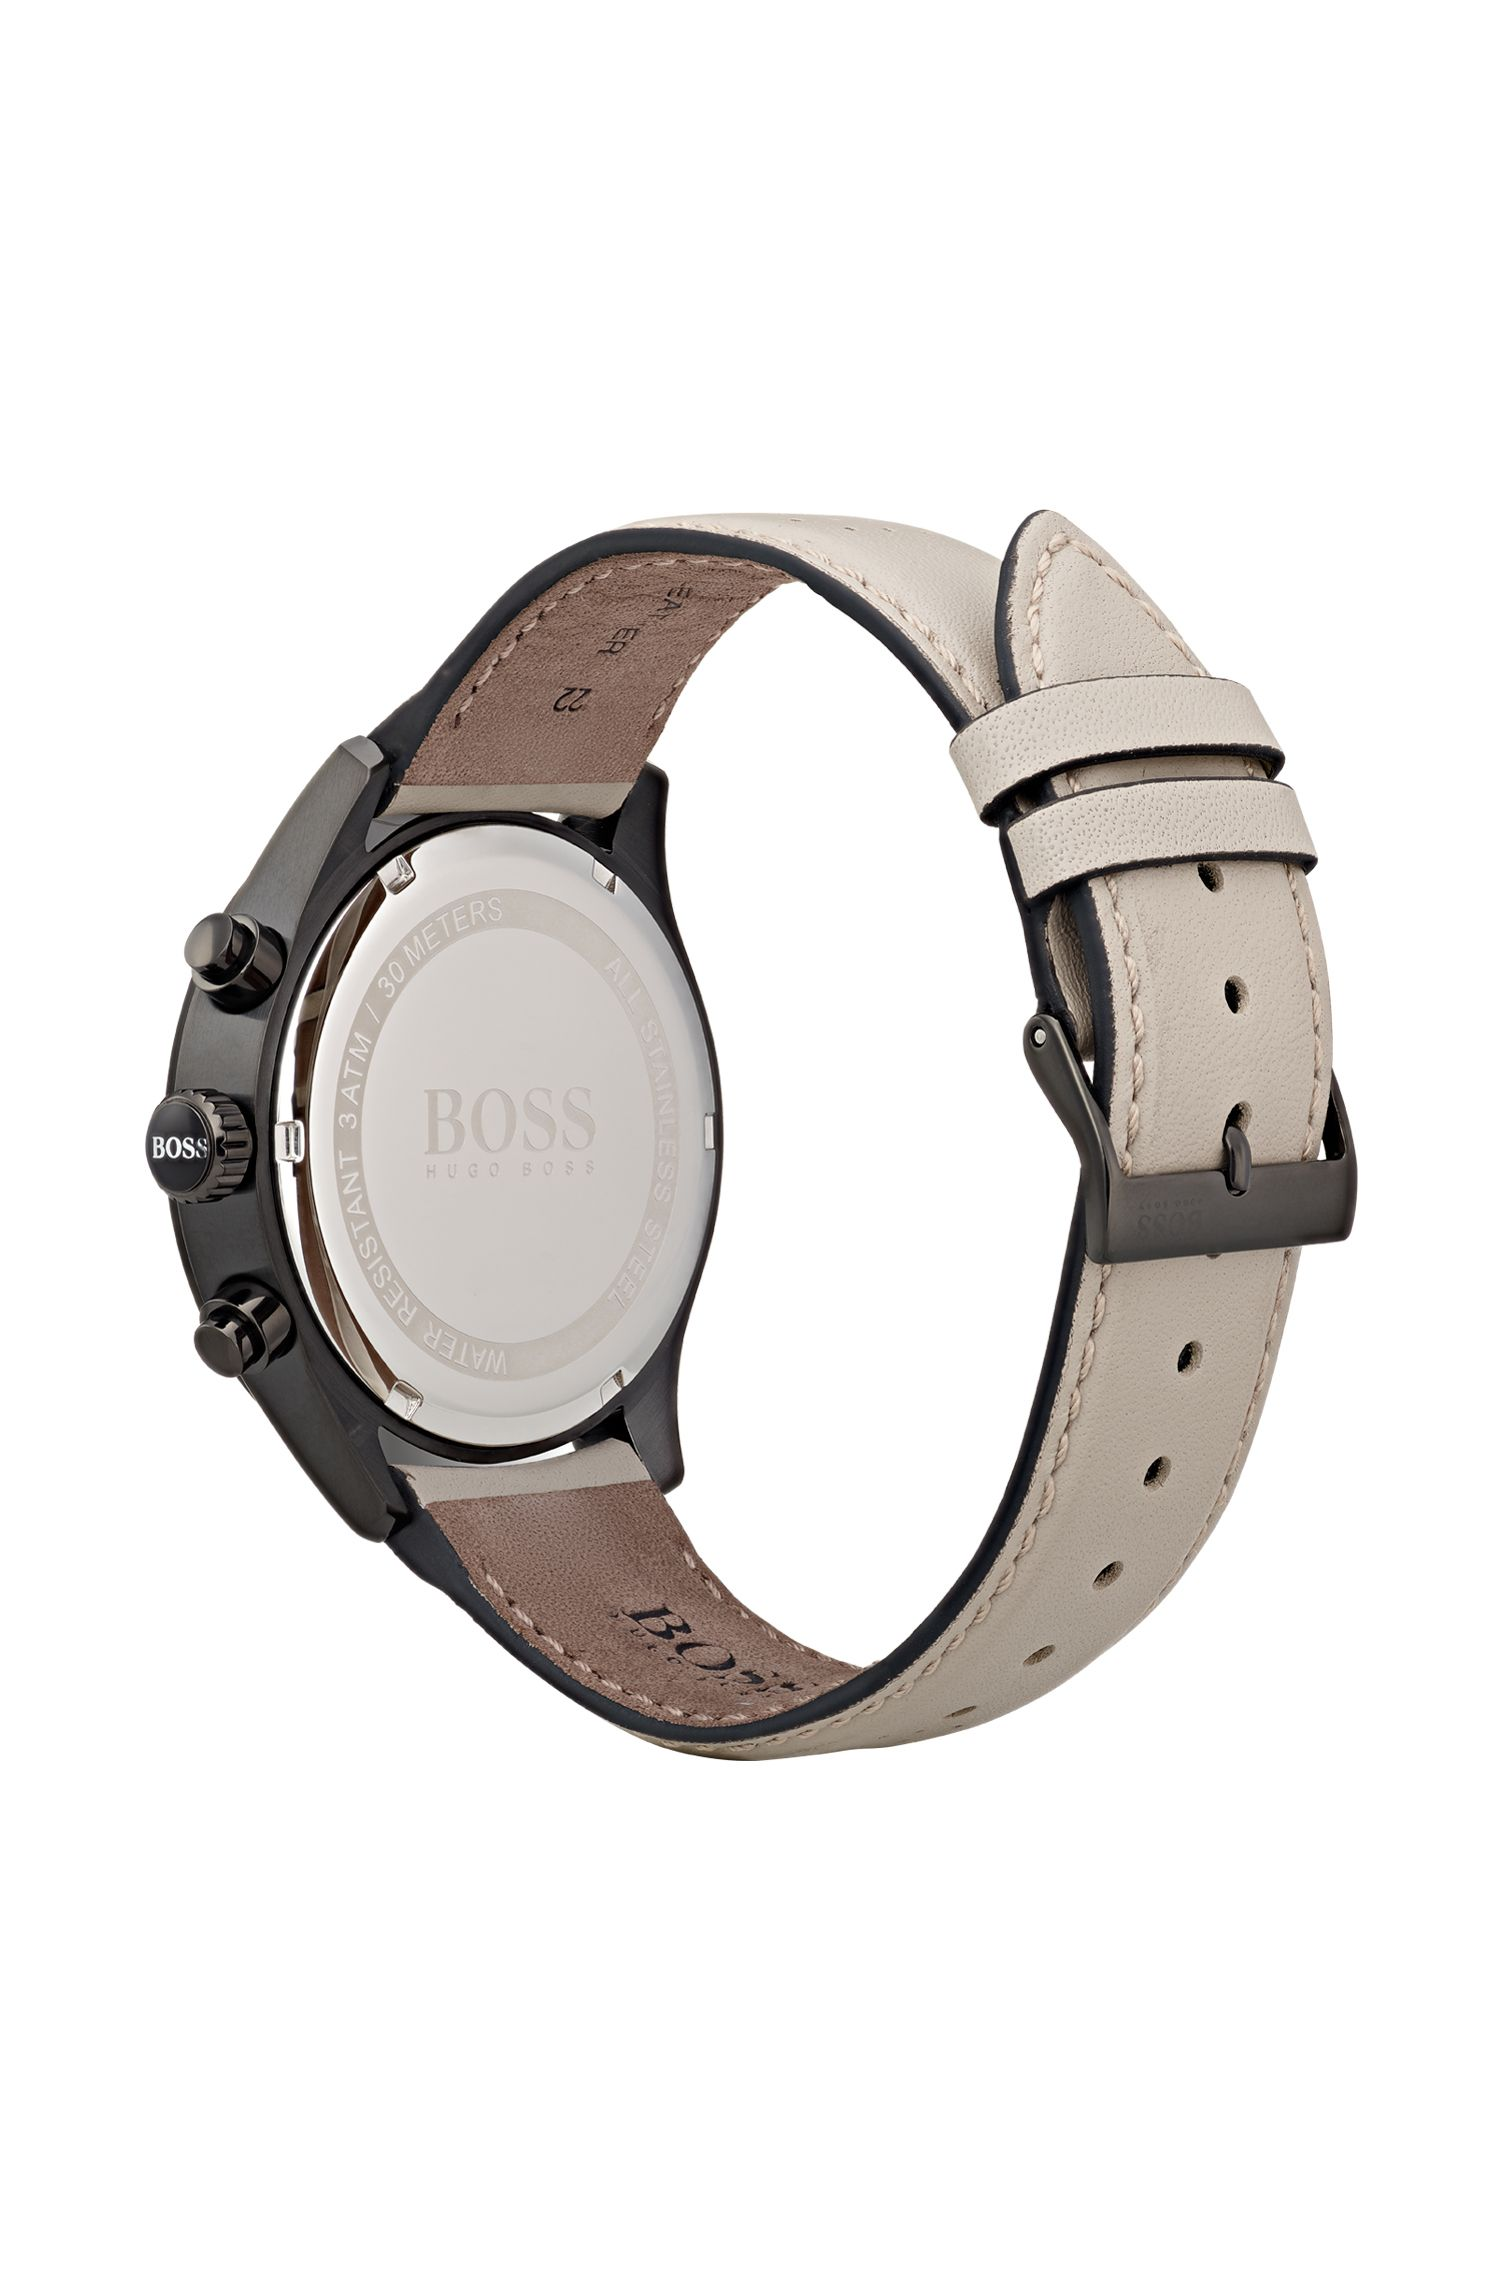 Black-Plated Stainless-Steel Watch with Beige Perforated Leather Strap, Assorted-Pre-Pack